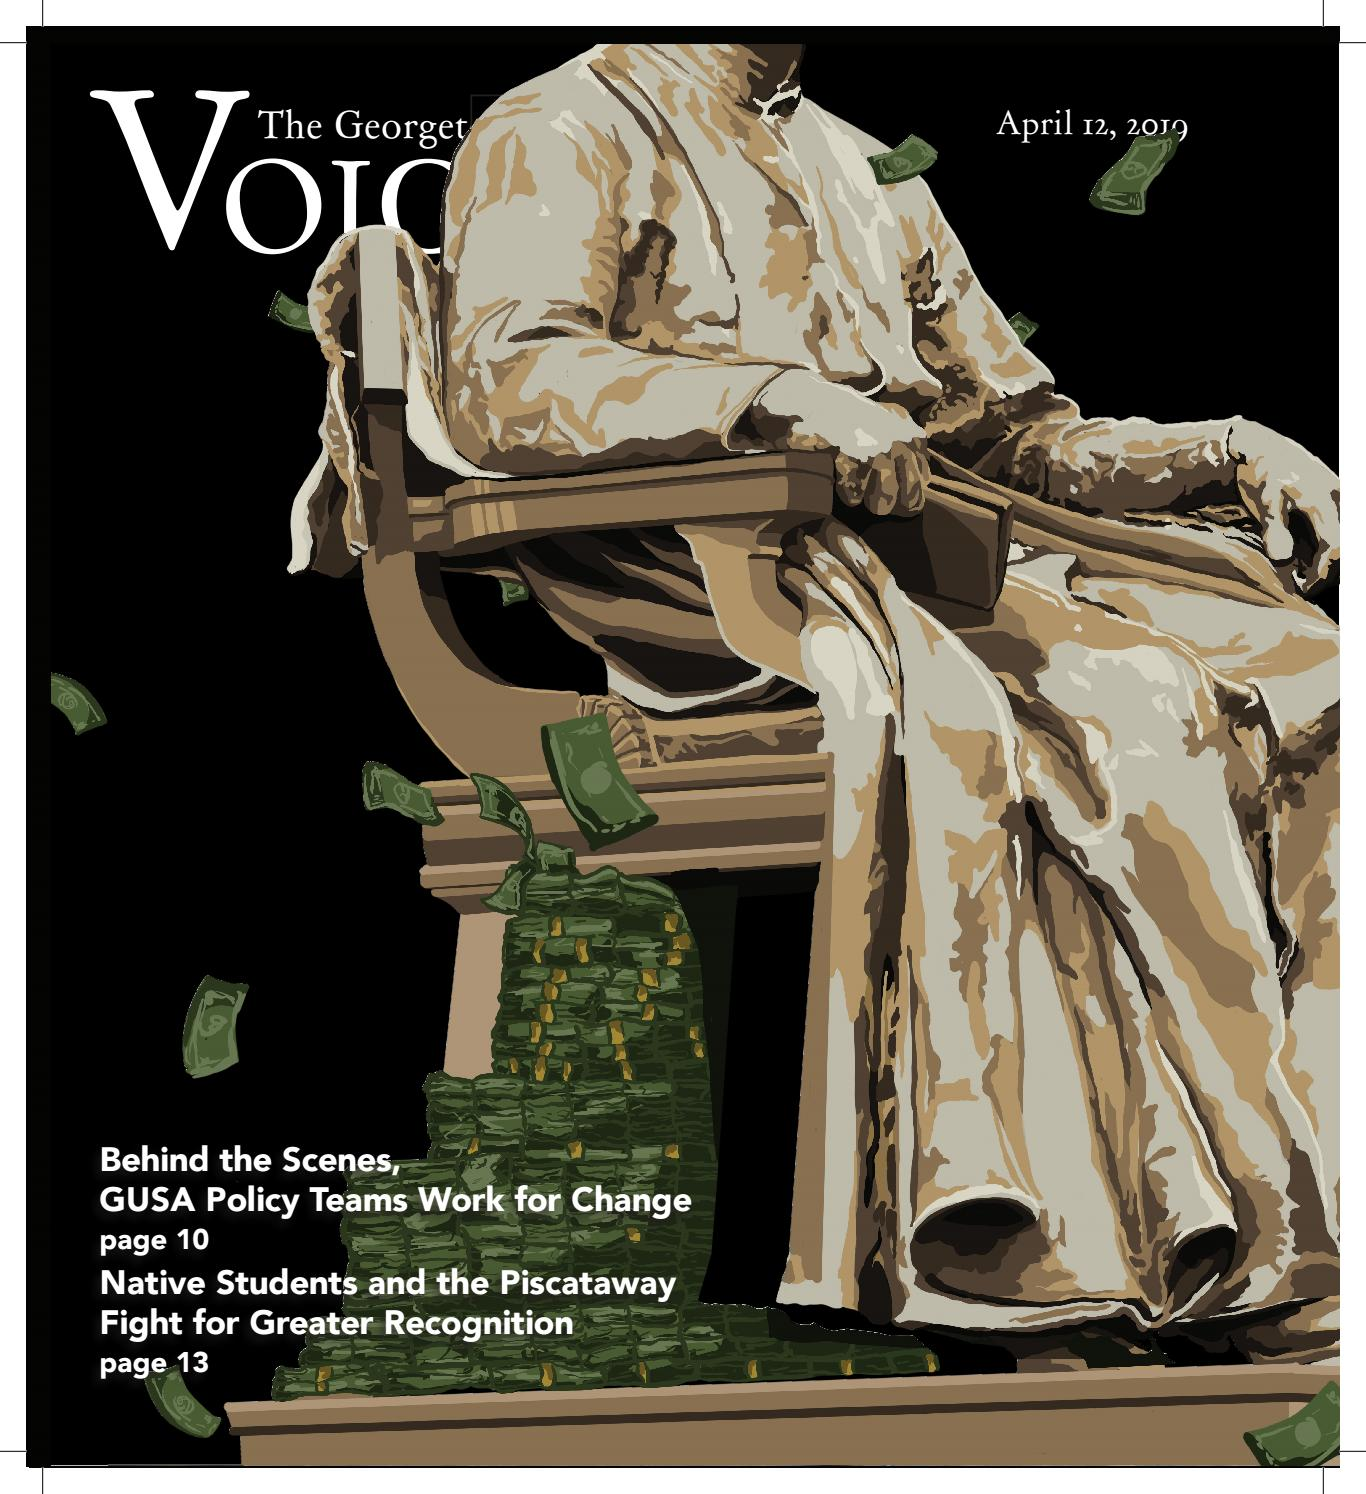 The Georgetown Voice April 12, 2019 by The Georgetown Voice